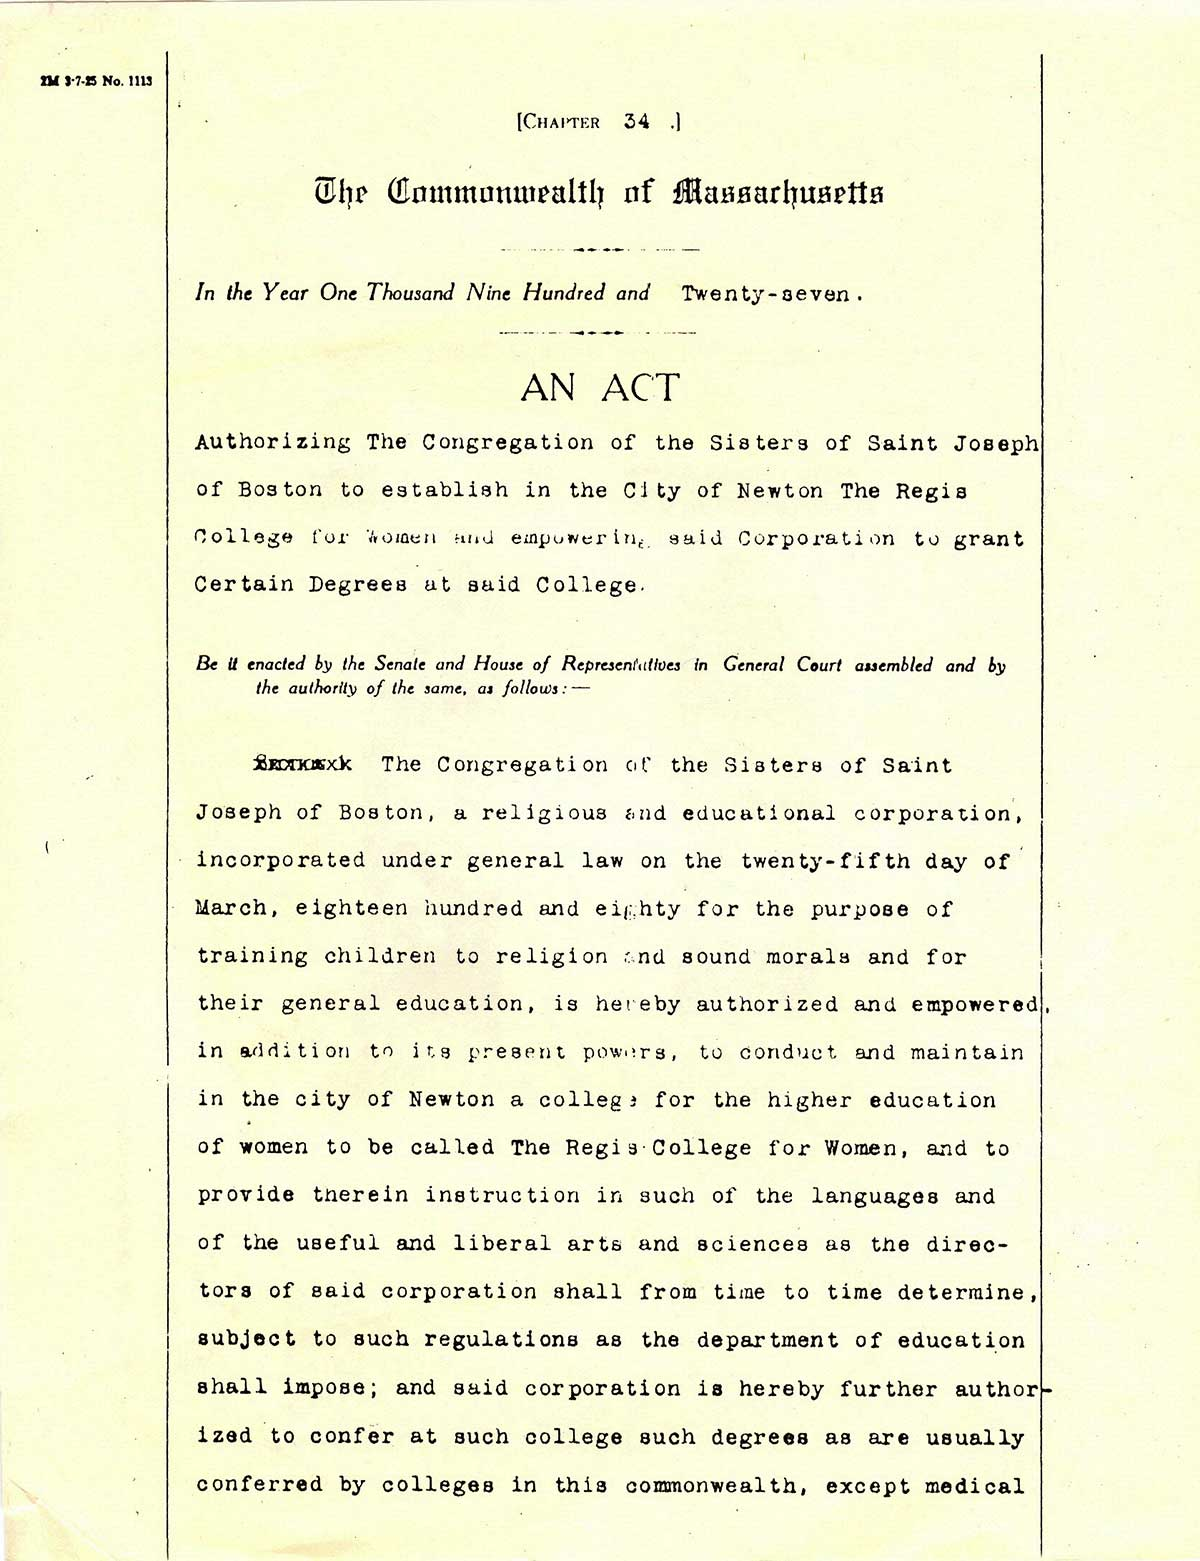 The original Regis College charter 1927